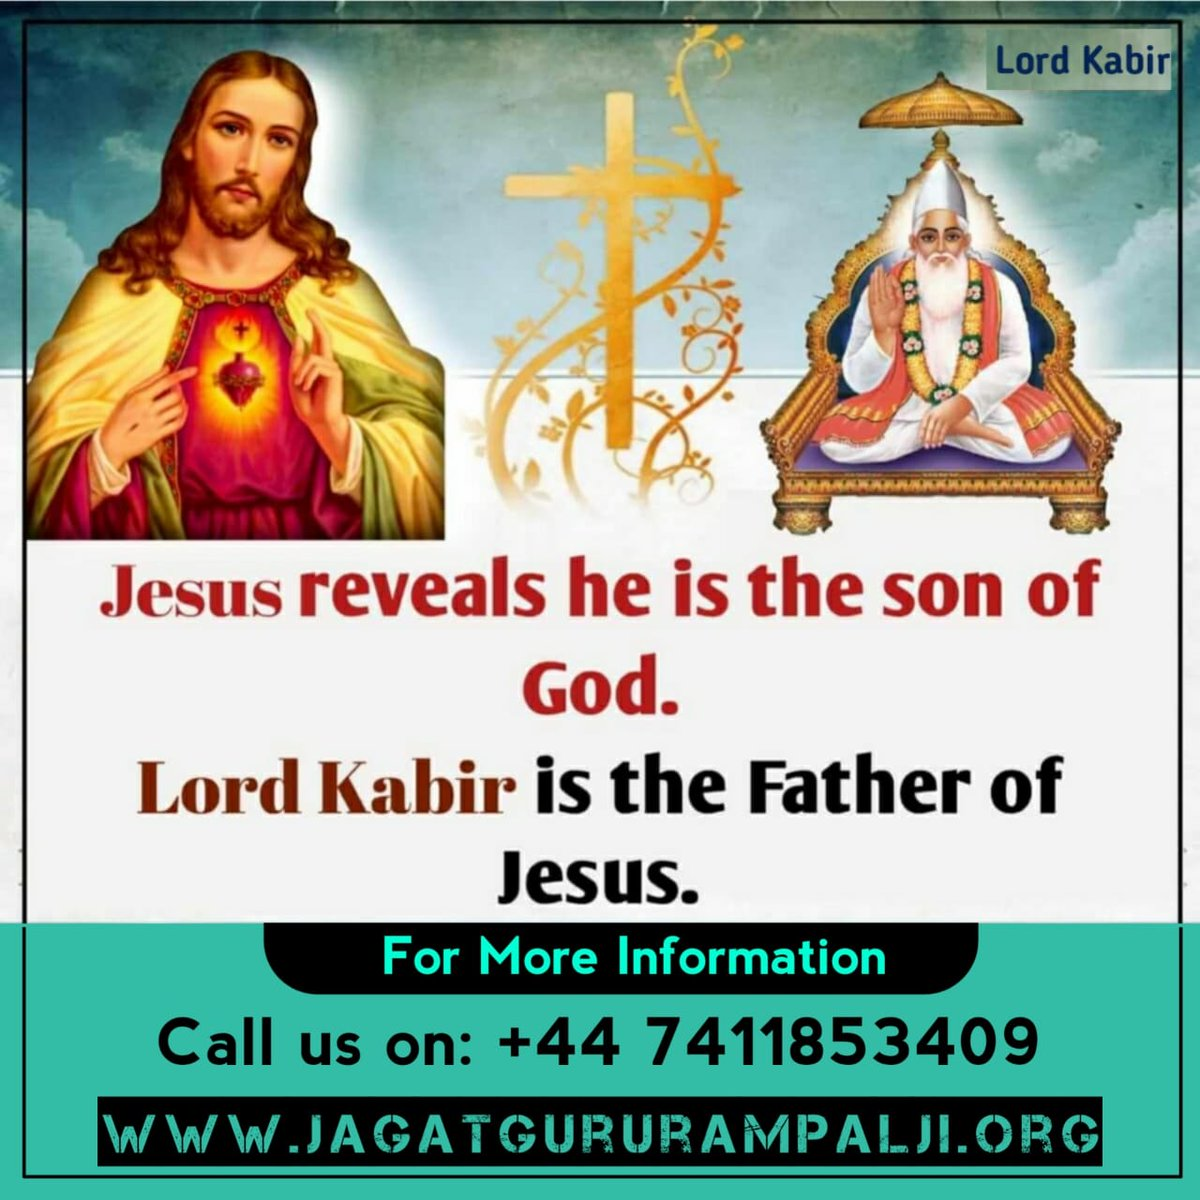 #TuesdayThoughts  The poet/the saint whom the whole world calls a weaver is actually God who came in human form and gave spiritual knowledge to his beloved souls. @SaintRampalJiM  Sadhna tv 7:30 pm.<br>http://pic.twitter.com/g9BmD63rrf